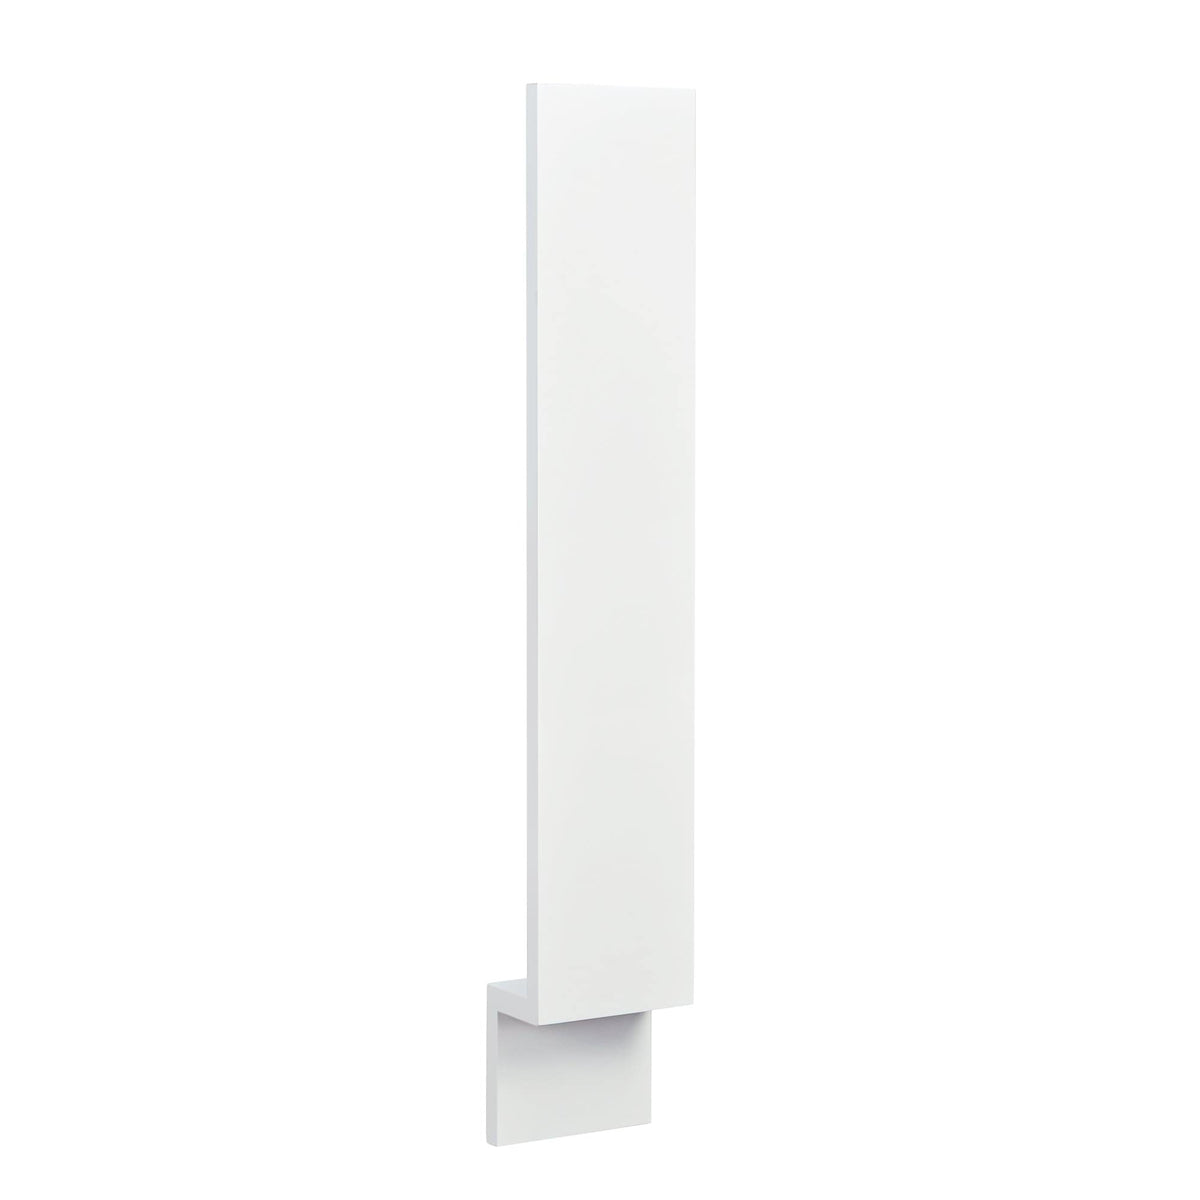 Accessories White Shaker Base Cabinet Filler Trim Pieces WSBF3 Inset Kitchen Cabinets